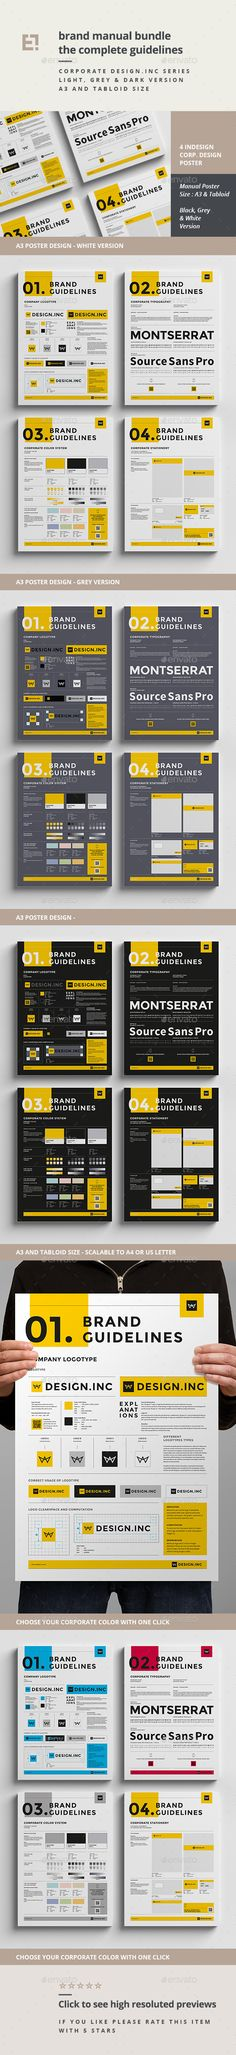 Brand Manual  Best Brand Manual Ideas